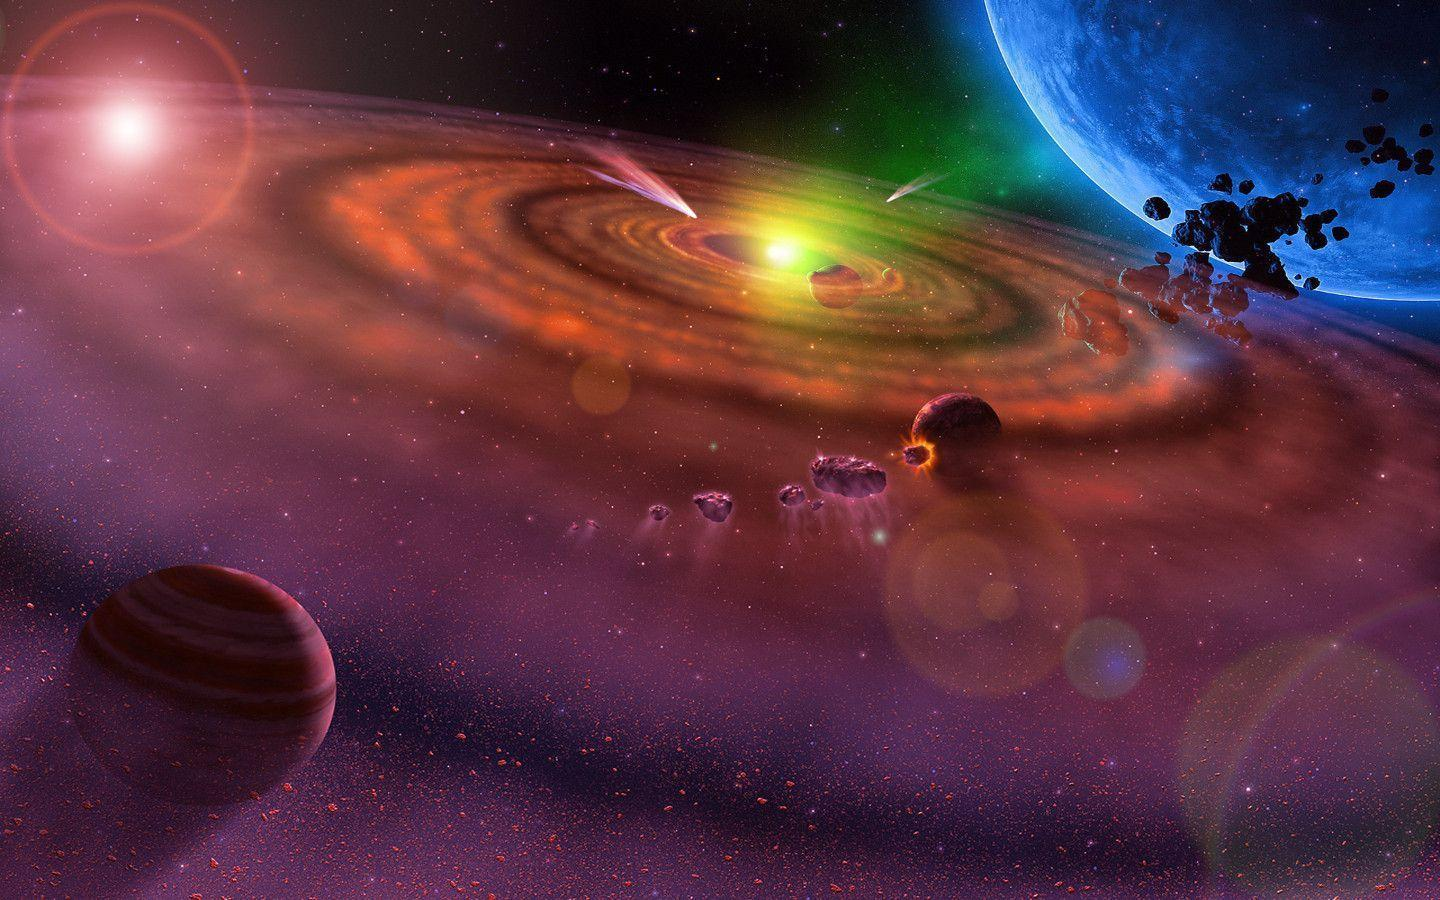 space planets images - photo #35